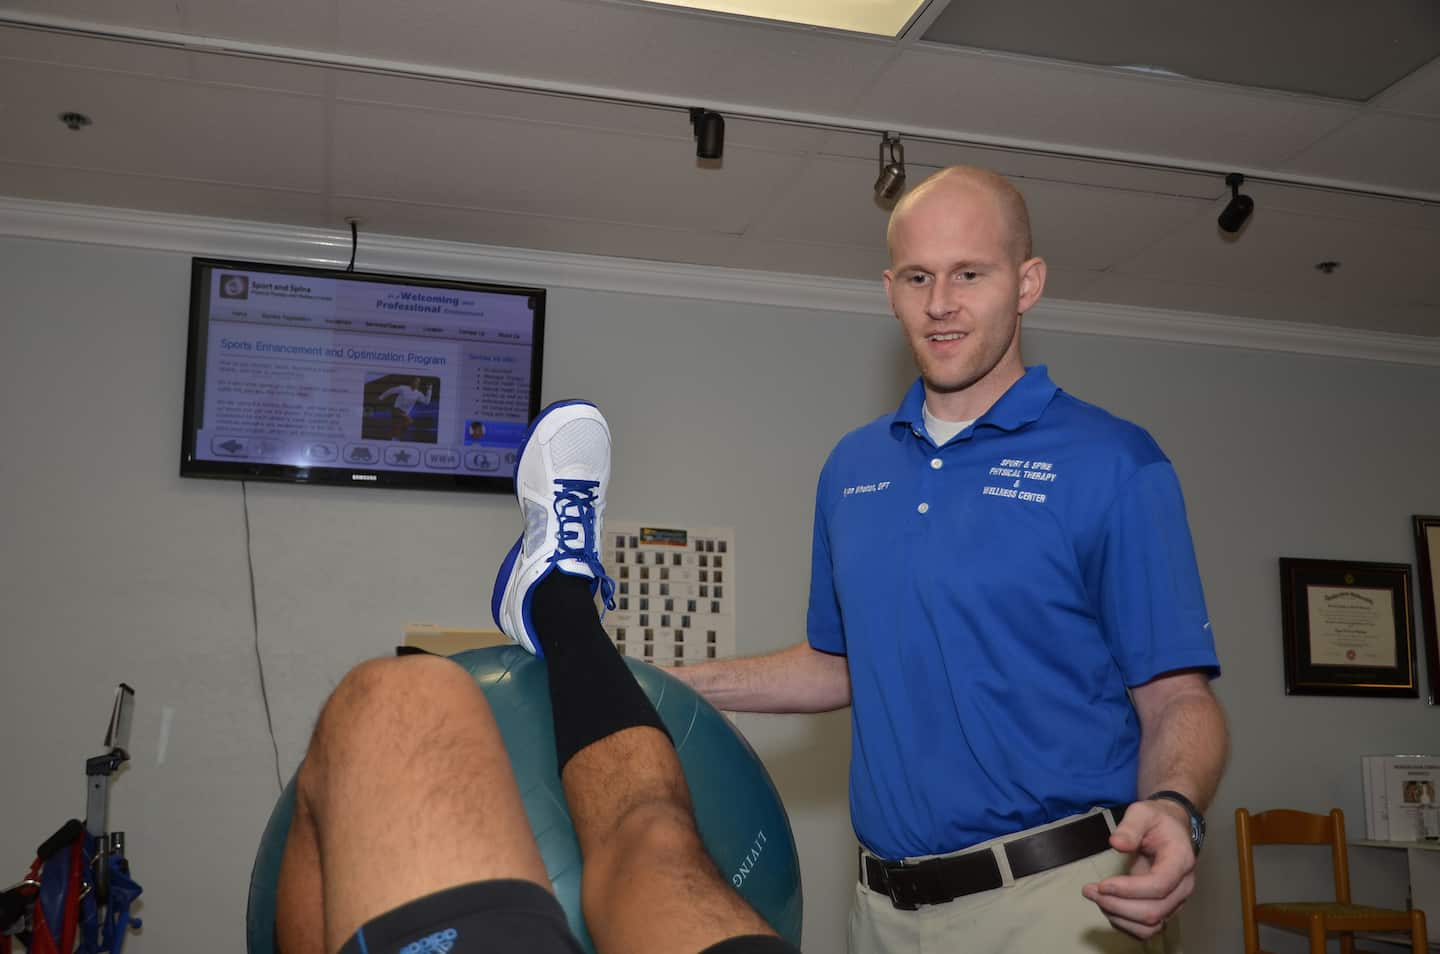 Question about Physical Therapy?